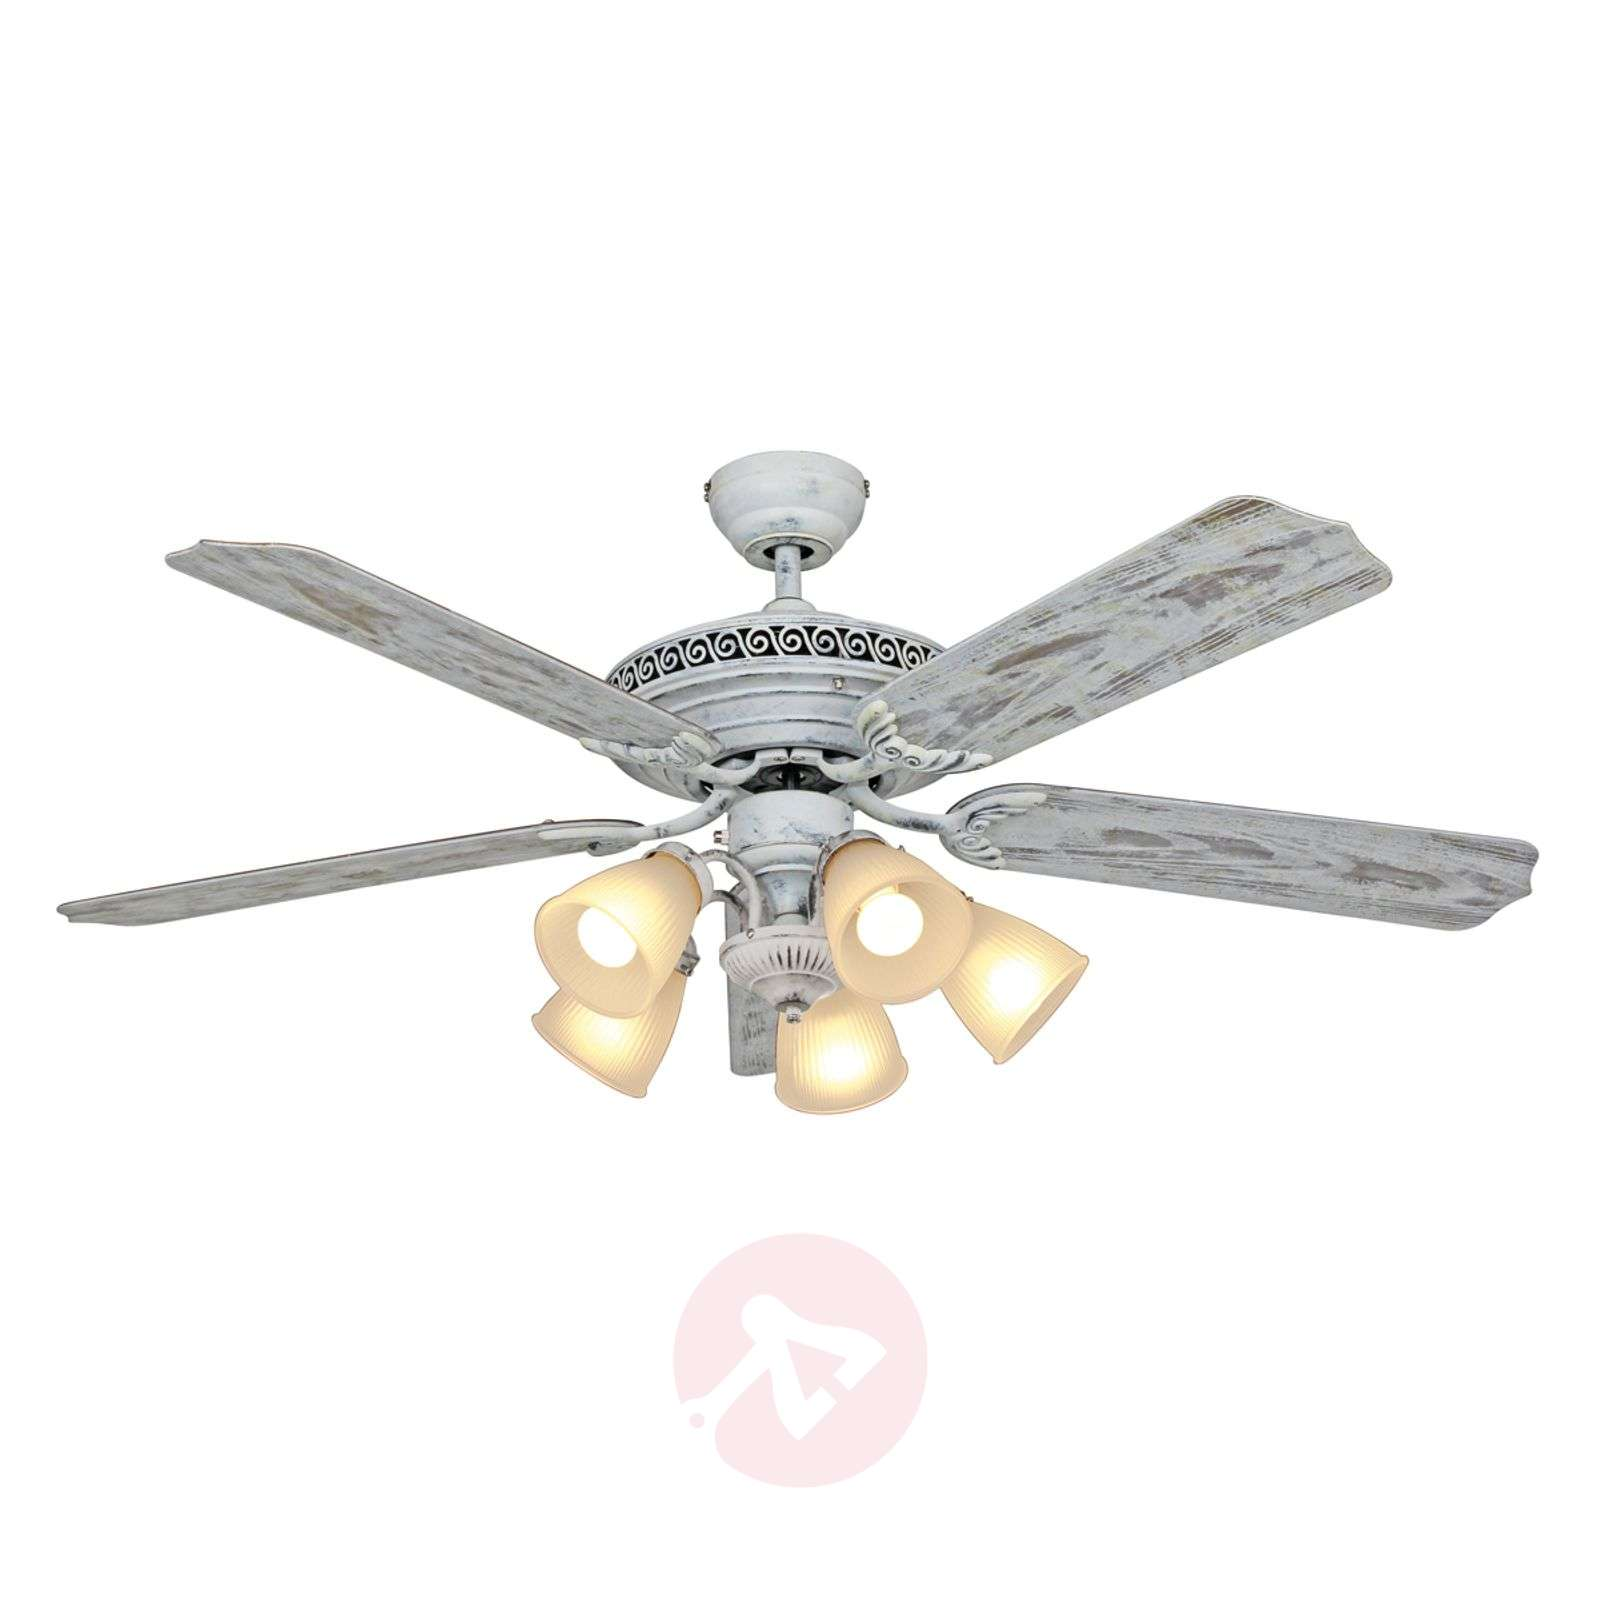 quiet ceiling fan centurion with a light. Black Bedroom Furniture Sets. Home Design Ideas